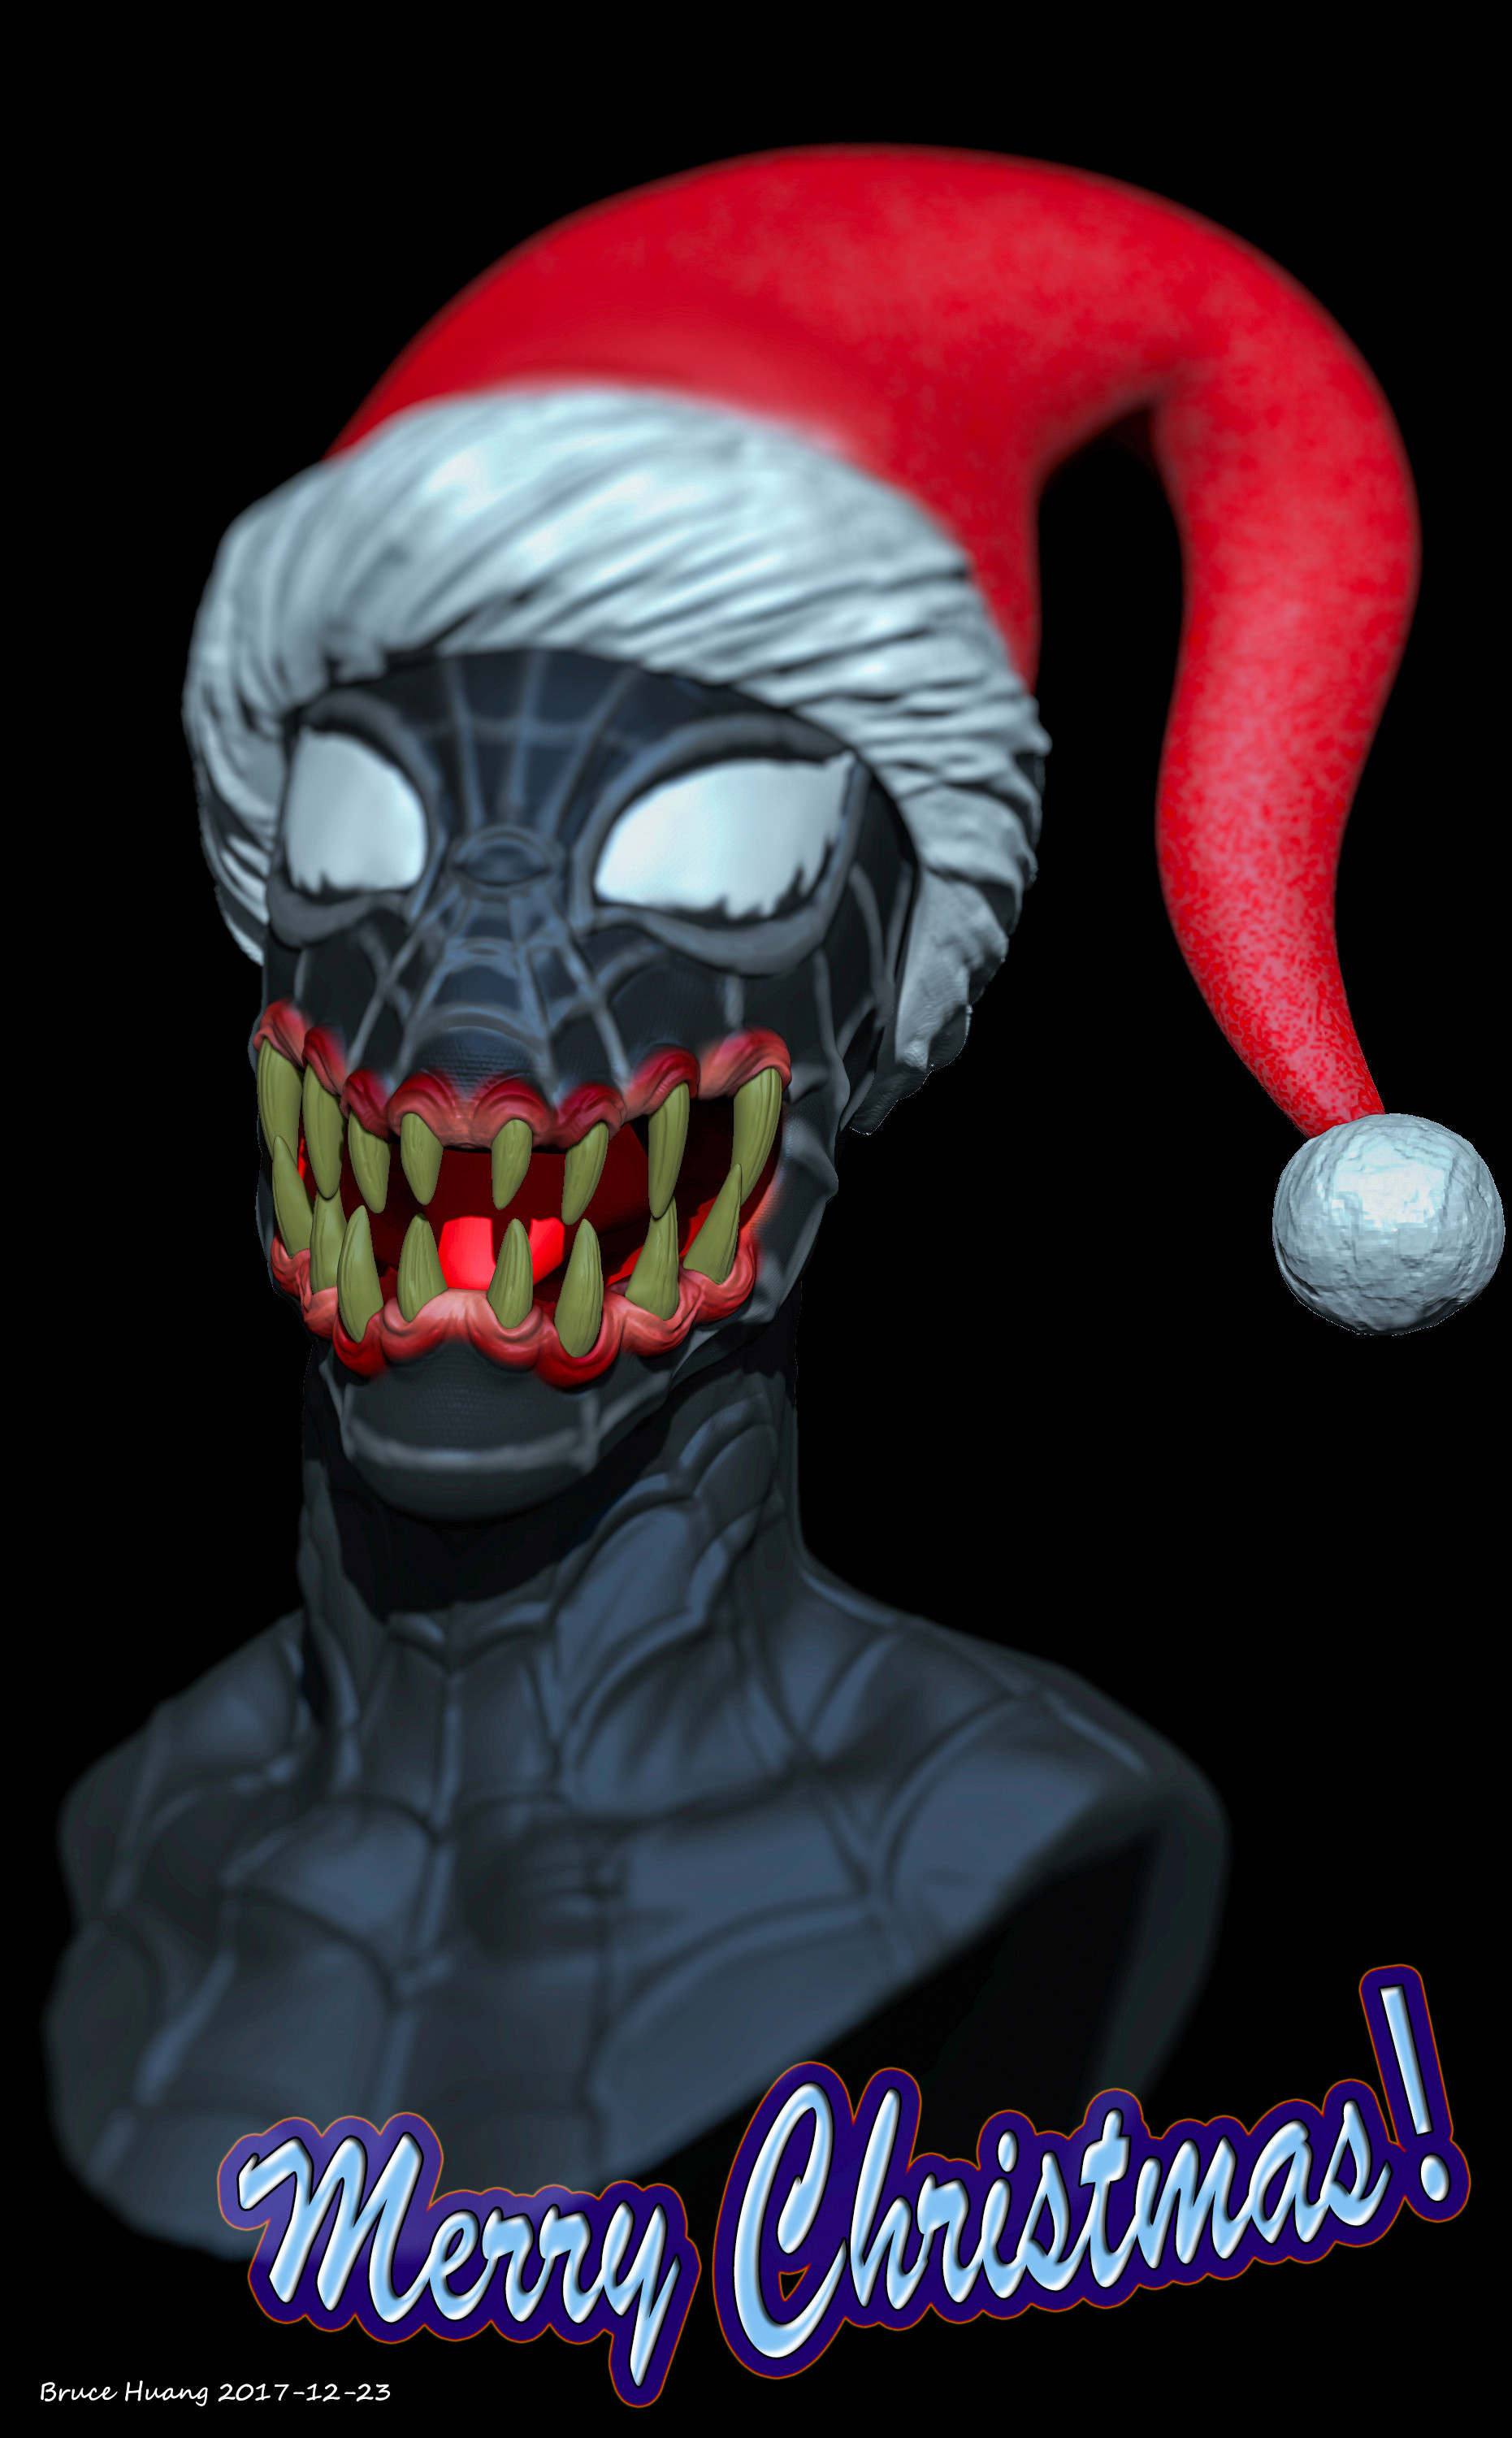 Spiderman Christmas.Bruce Huang Merry Christmas Spiderman